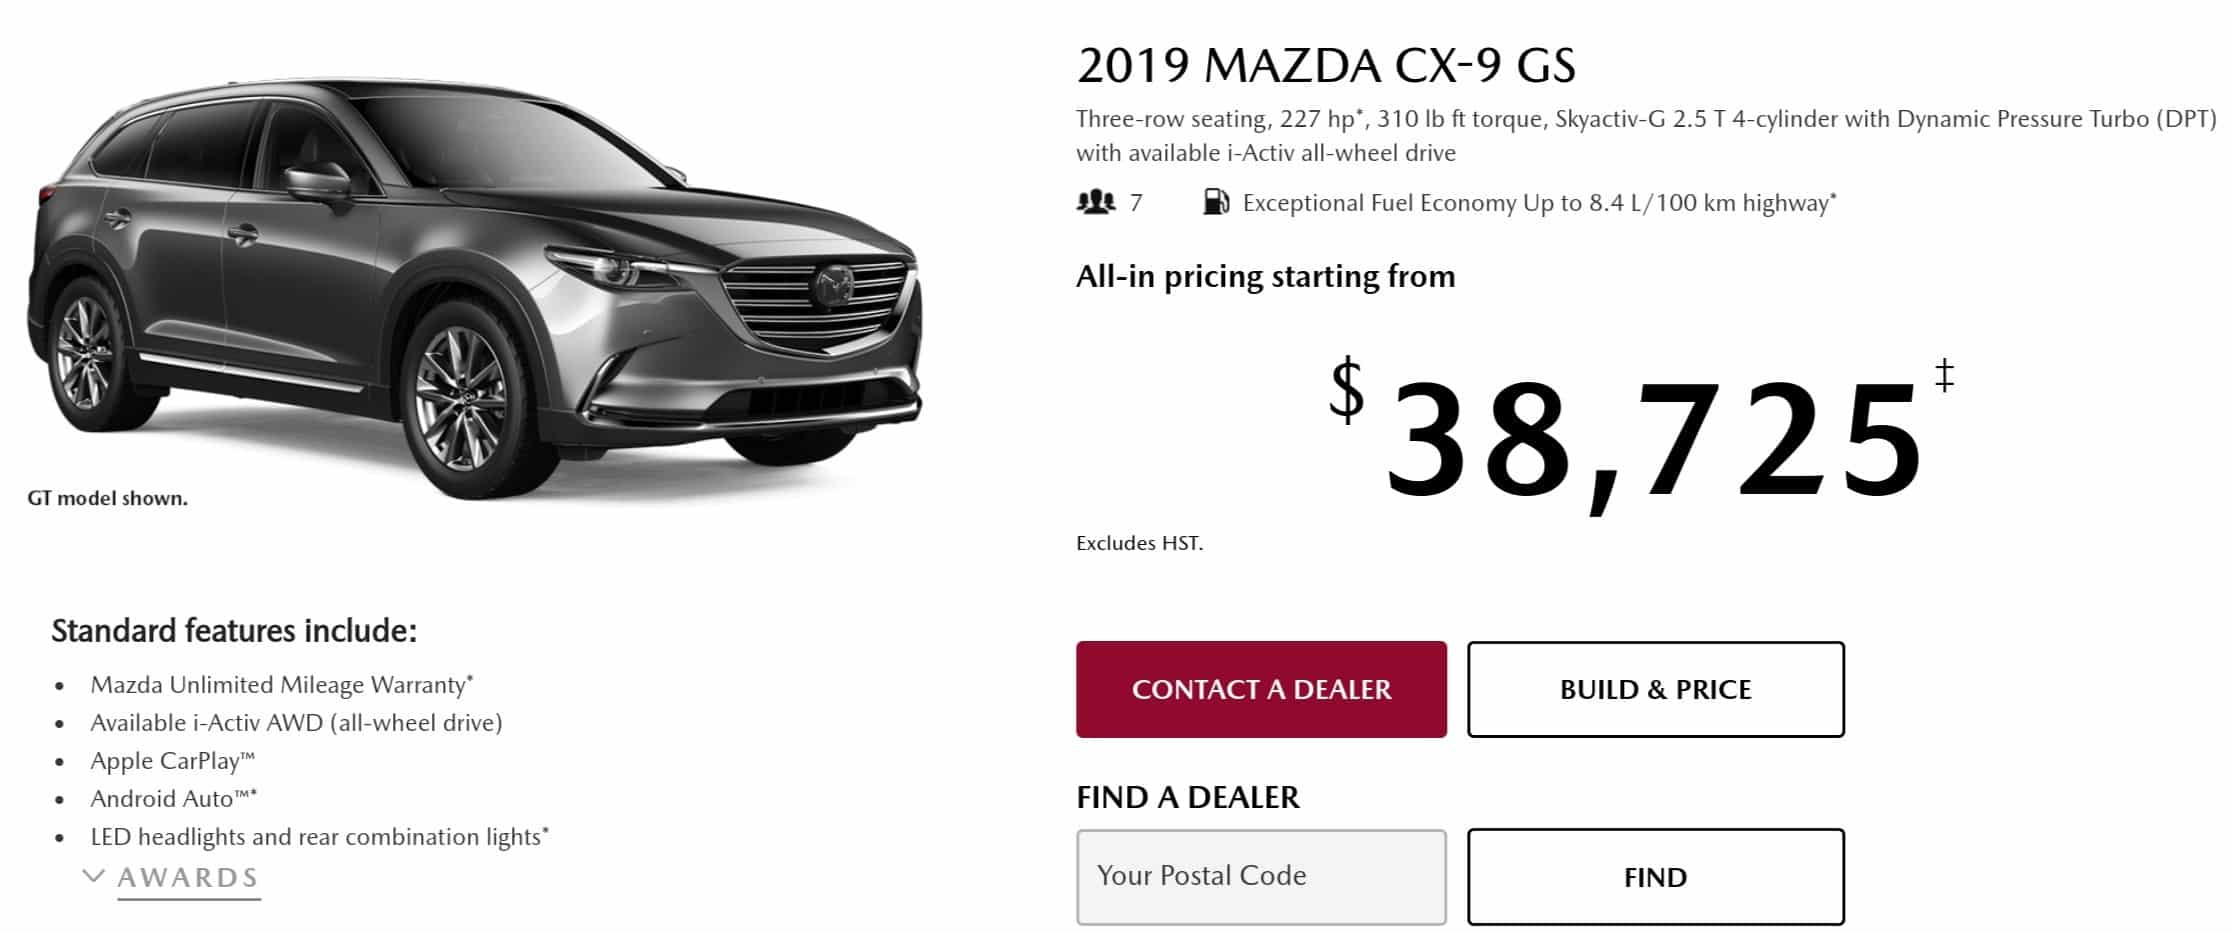 2019 Mazda CX 9 is one of the best 7 seater suv lease and finance deals